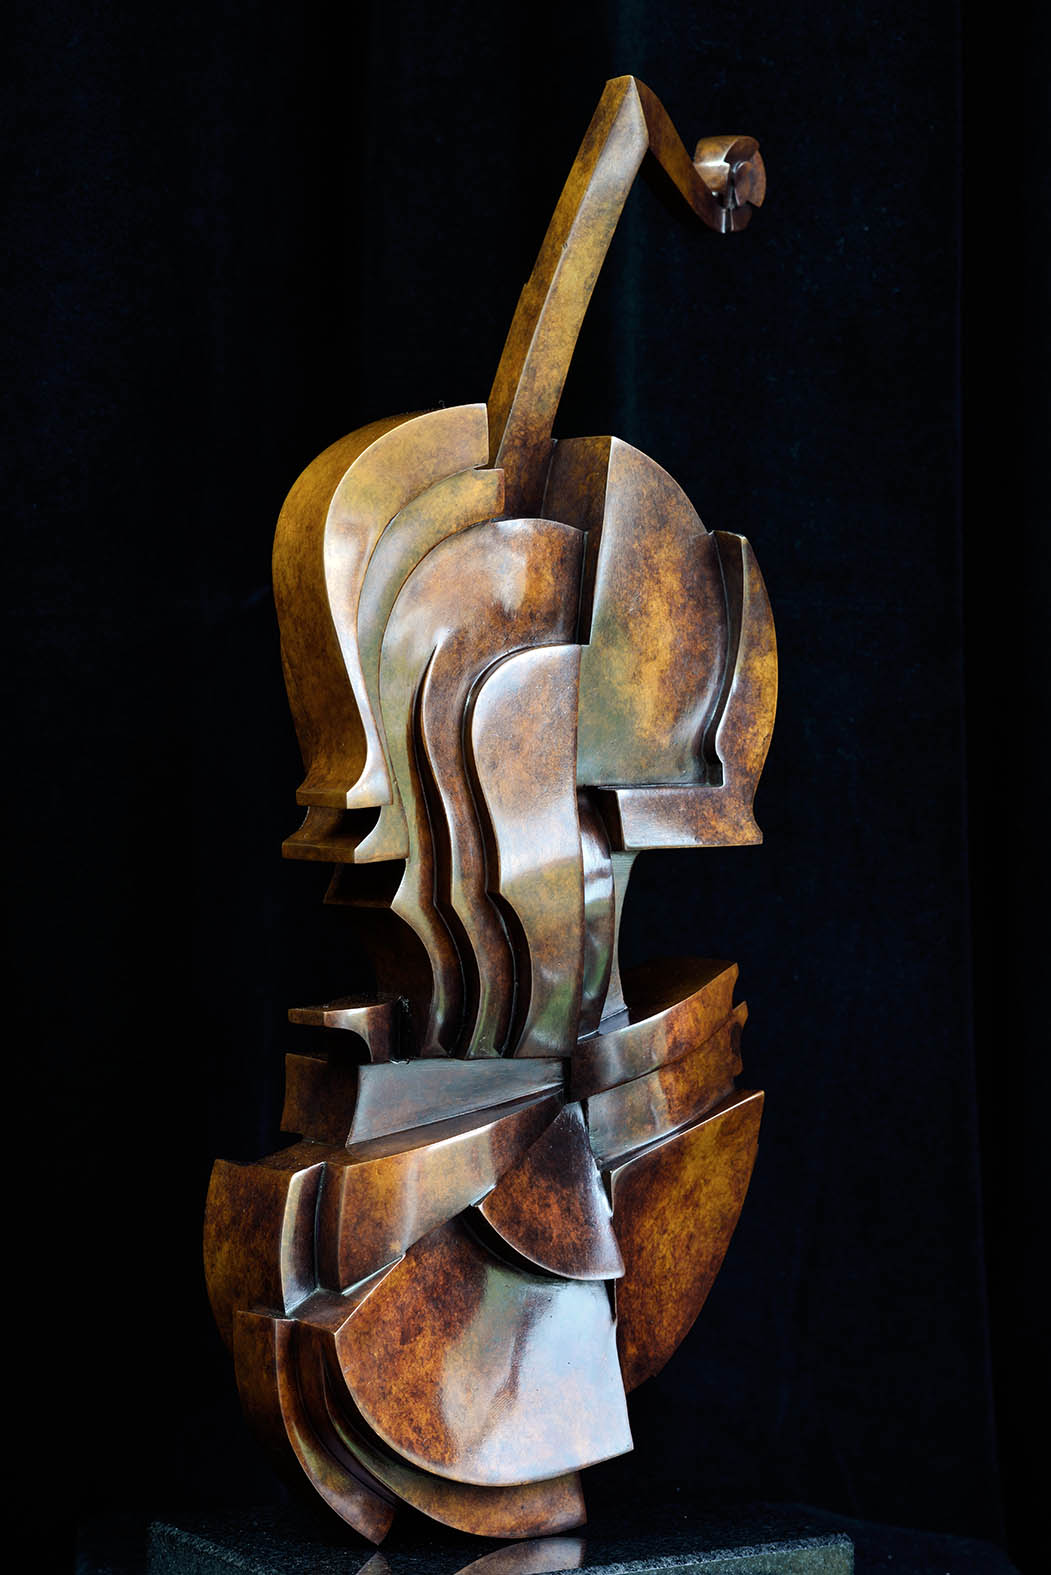 Cello by Andrew Thomas, from the Instrument series. Bronze